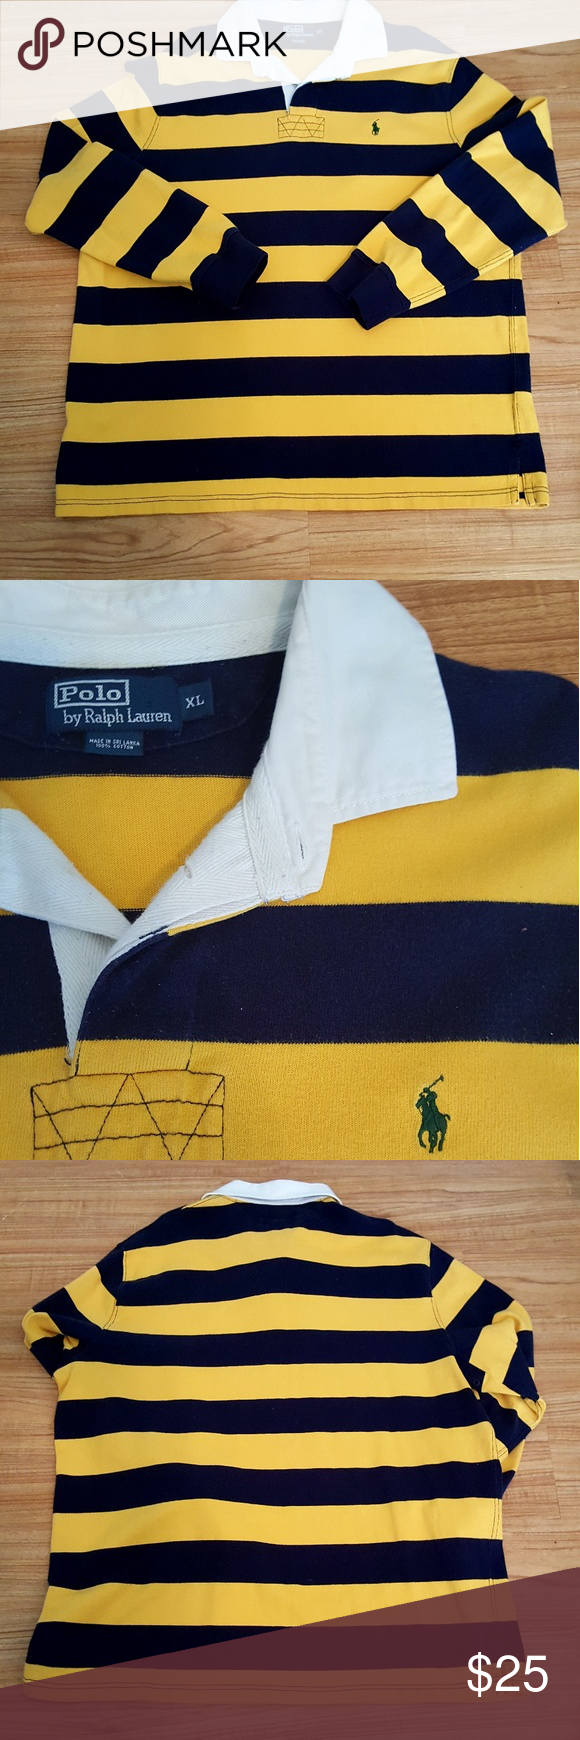 25682e9b995 ... reduced vintage polo ralph lauren striped rugby 7792f 759c1